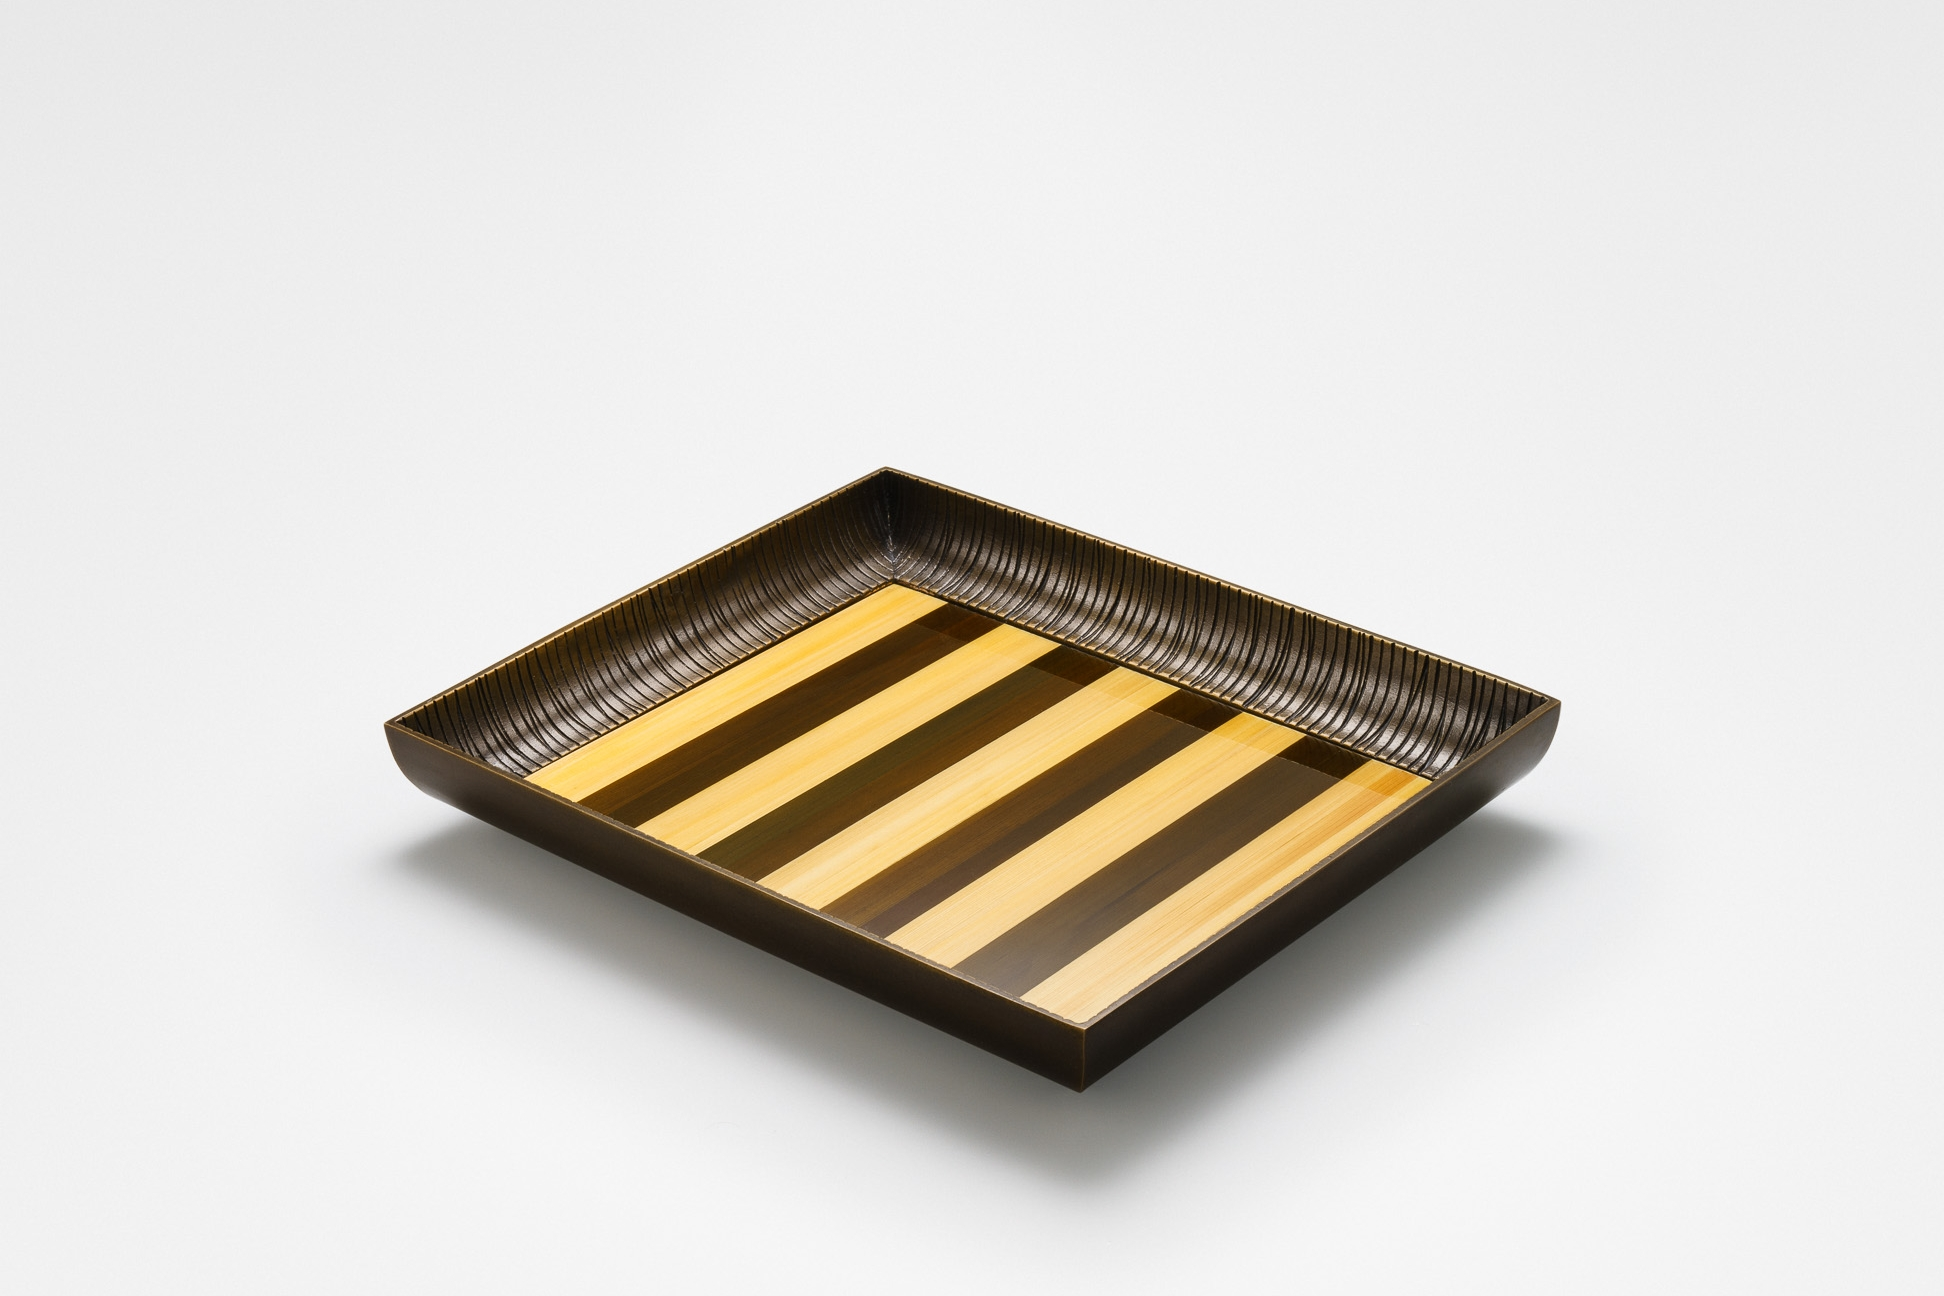 Tray - large - brown and yellow-LOW-RES.jpg